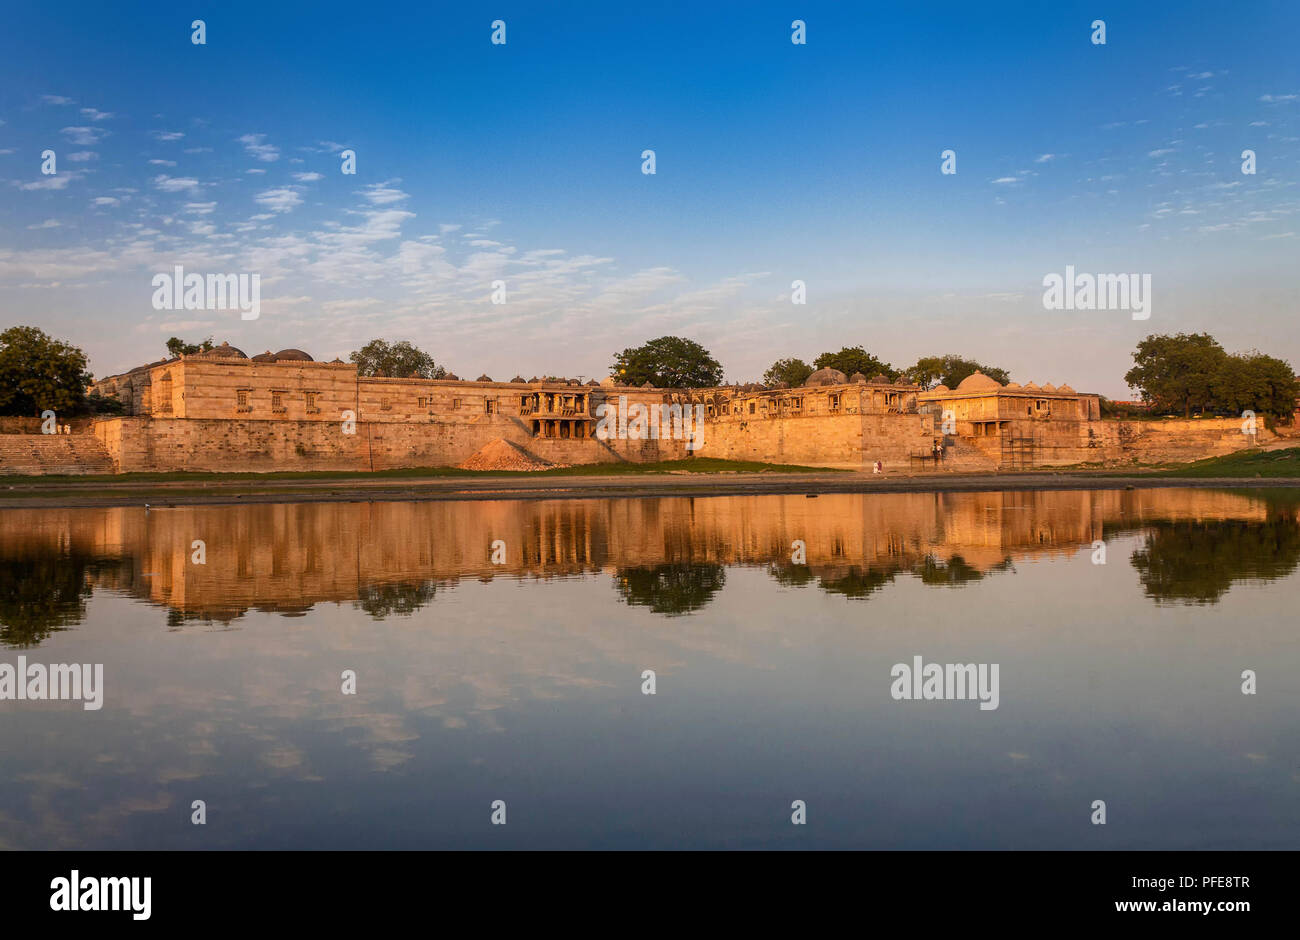 Ahmedabad,Gujarat,India, December 08,2014  A View Of Ancient Mosque And Tomb Complex Across Water In Sarkhej Roza.. - Stock Image